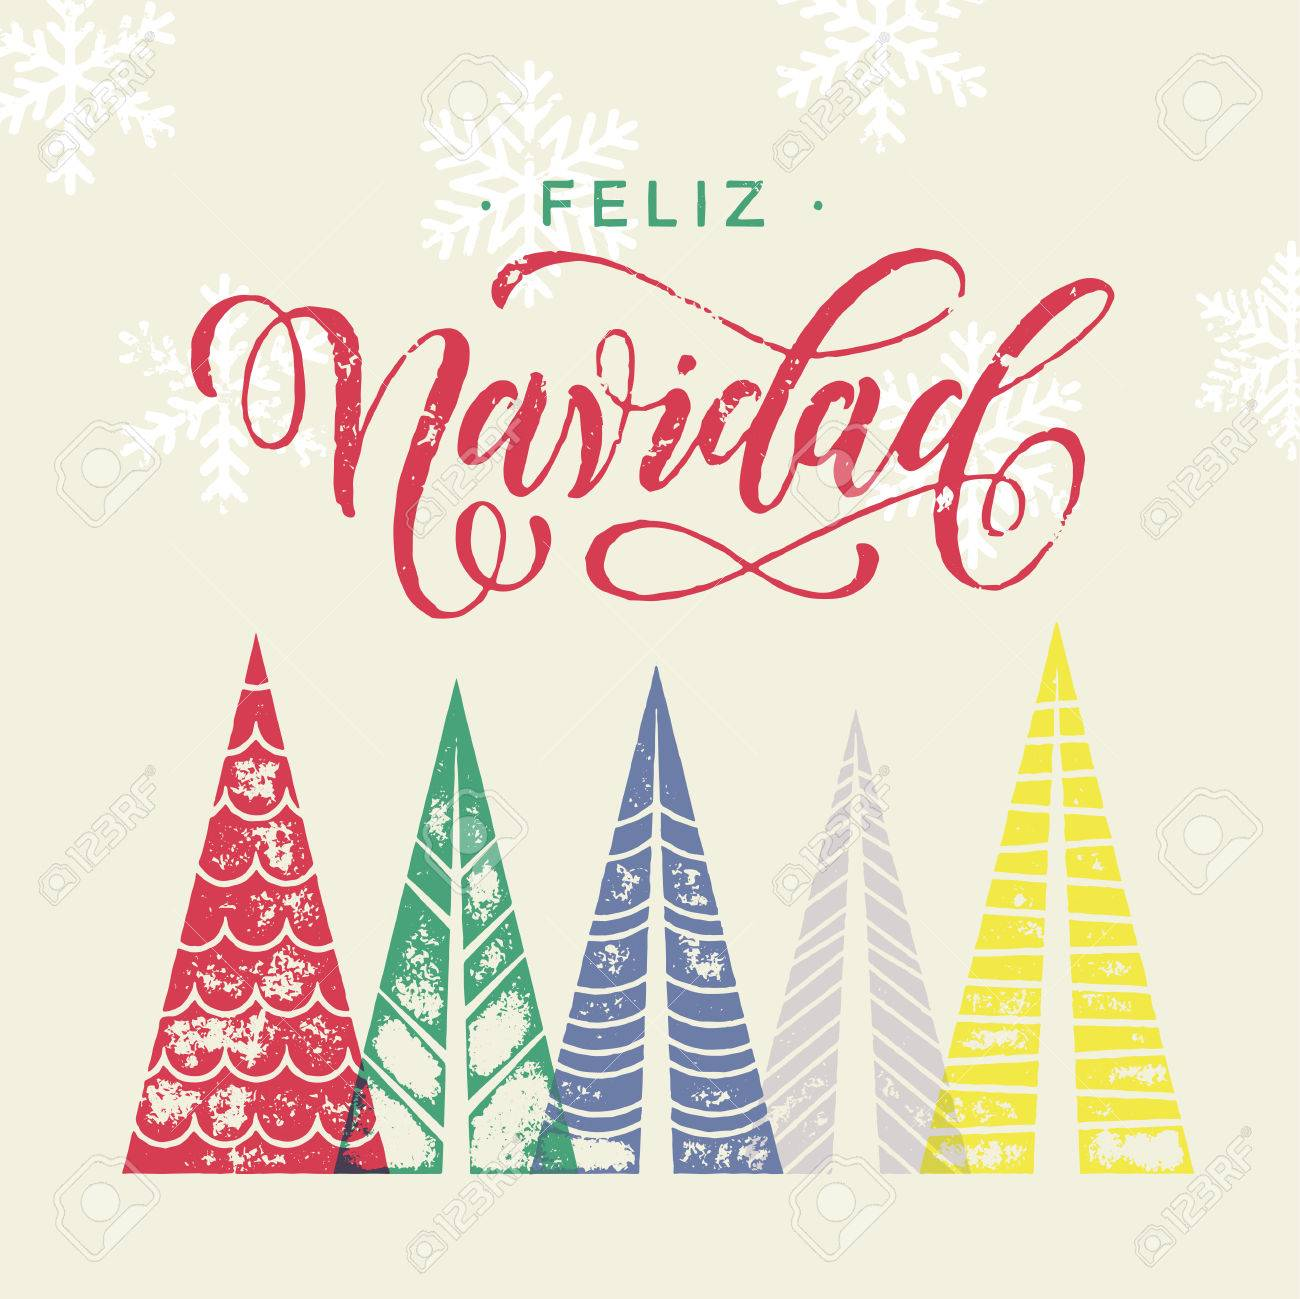 Colorful winter holiday spanish greeting card feliz navidad colorful winter holiday spanish greeting card feliz navidad merry christmas in spain text christmas tree kristyandbryce Images